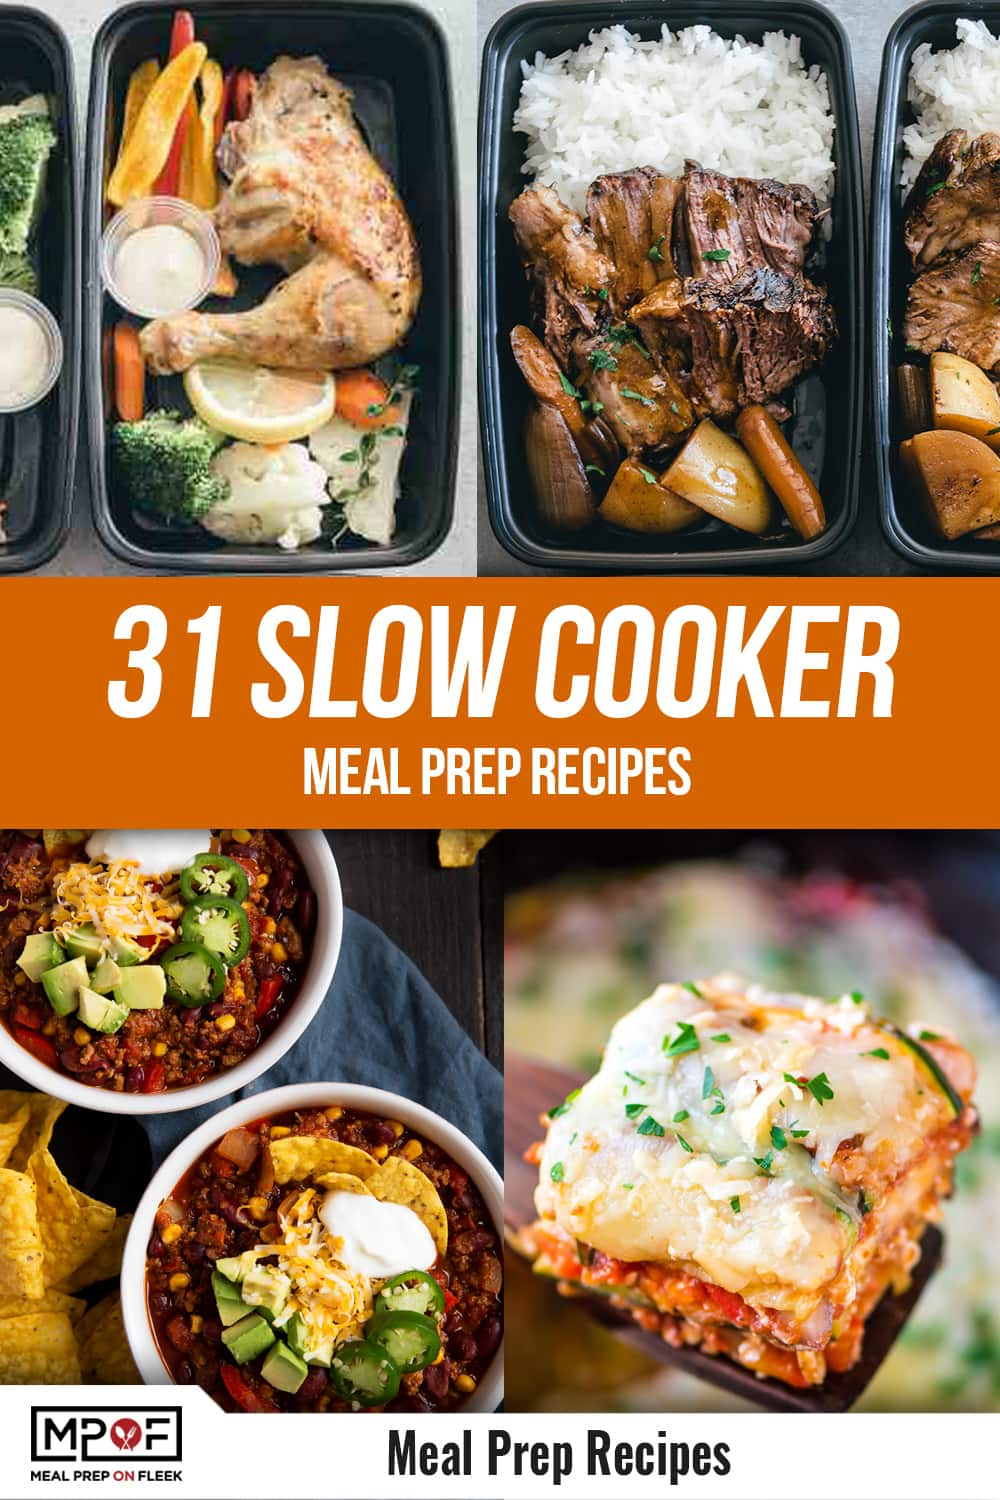 31-Slow-Cooker-Meal-Prep-Recipes Pinterest